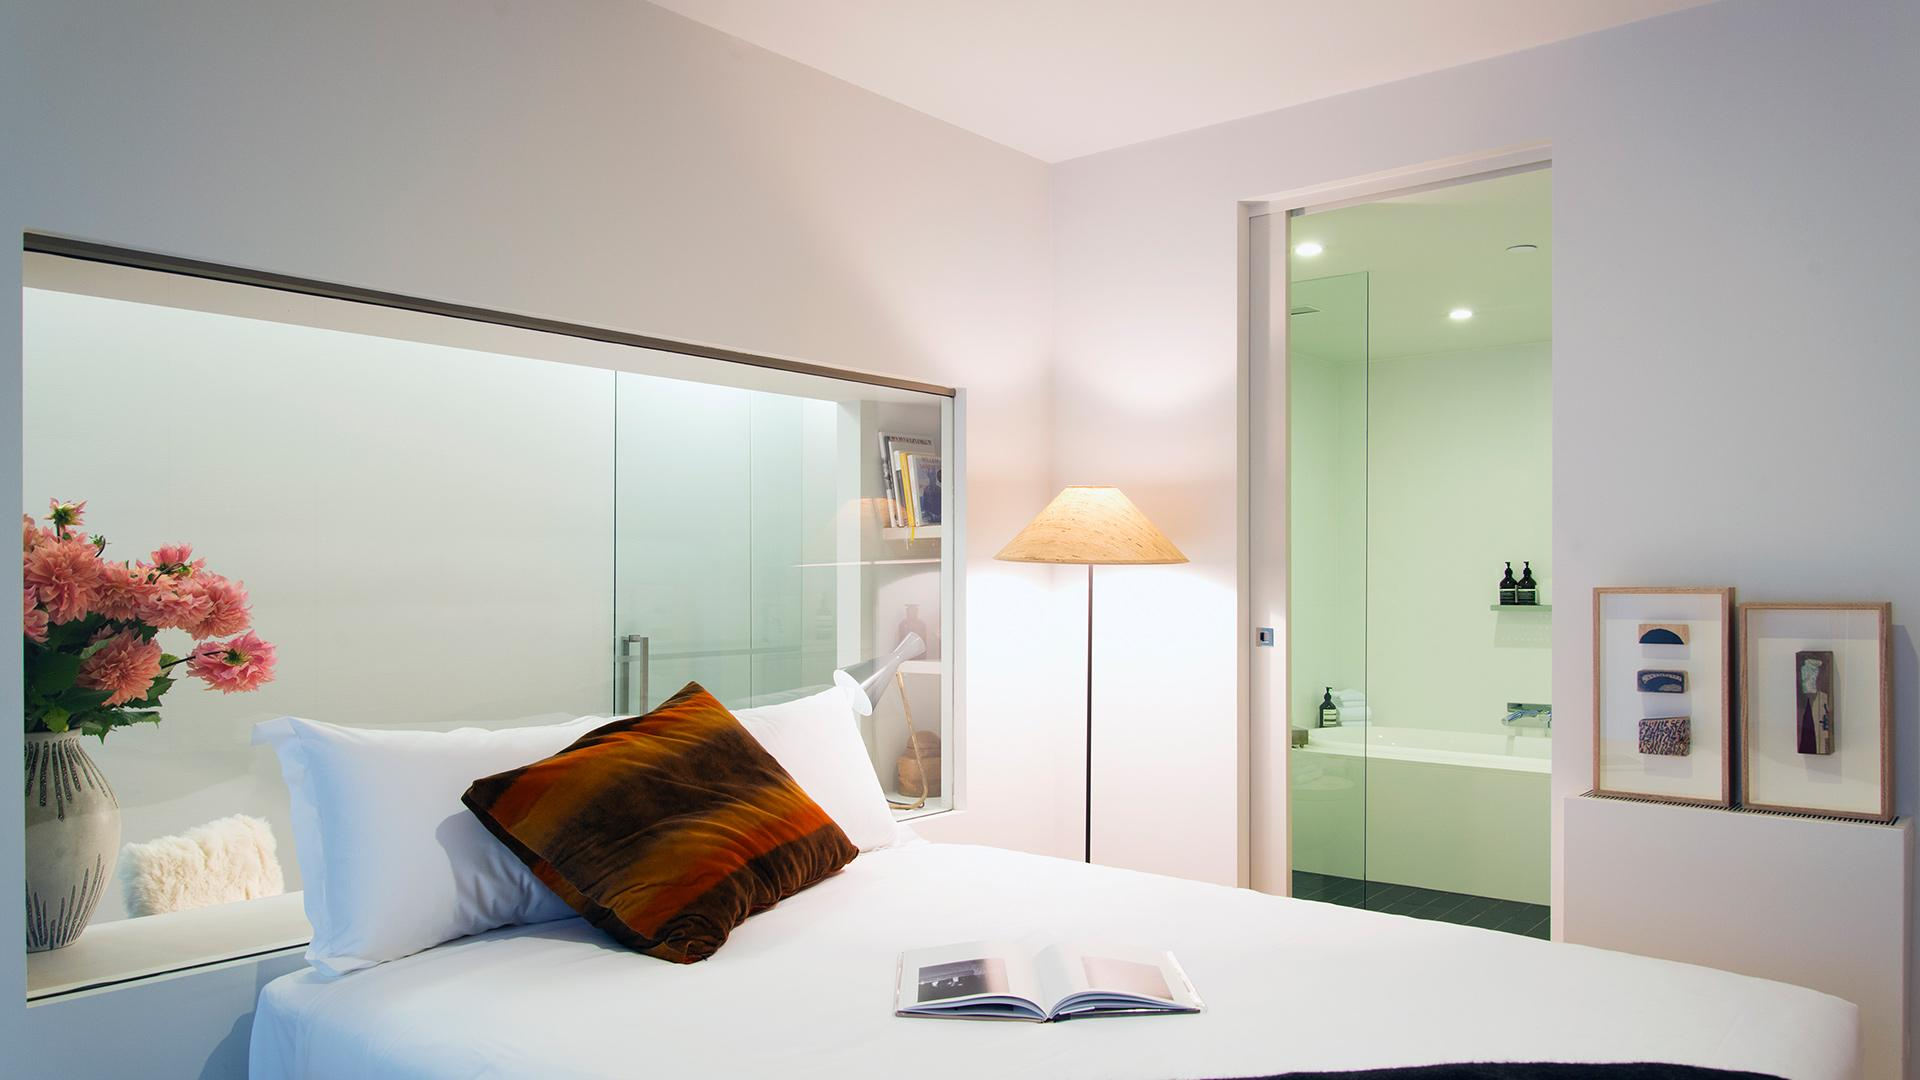 One Bedder image 1 at Nishi Apartments Eco-Living by Ovolo by null, Australian Capital Territory, Australia